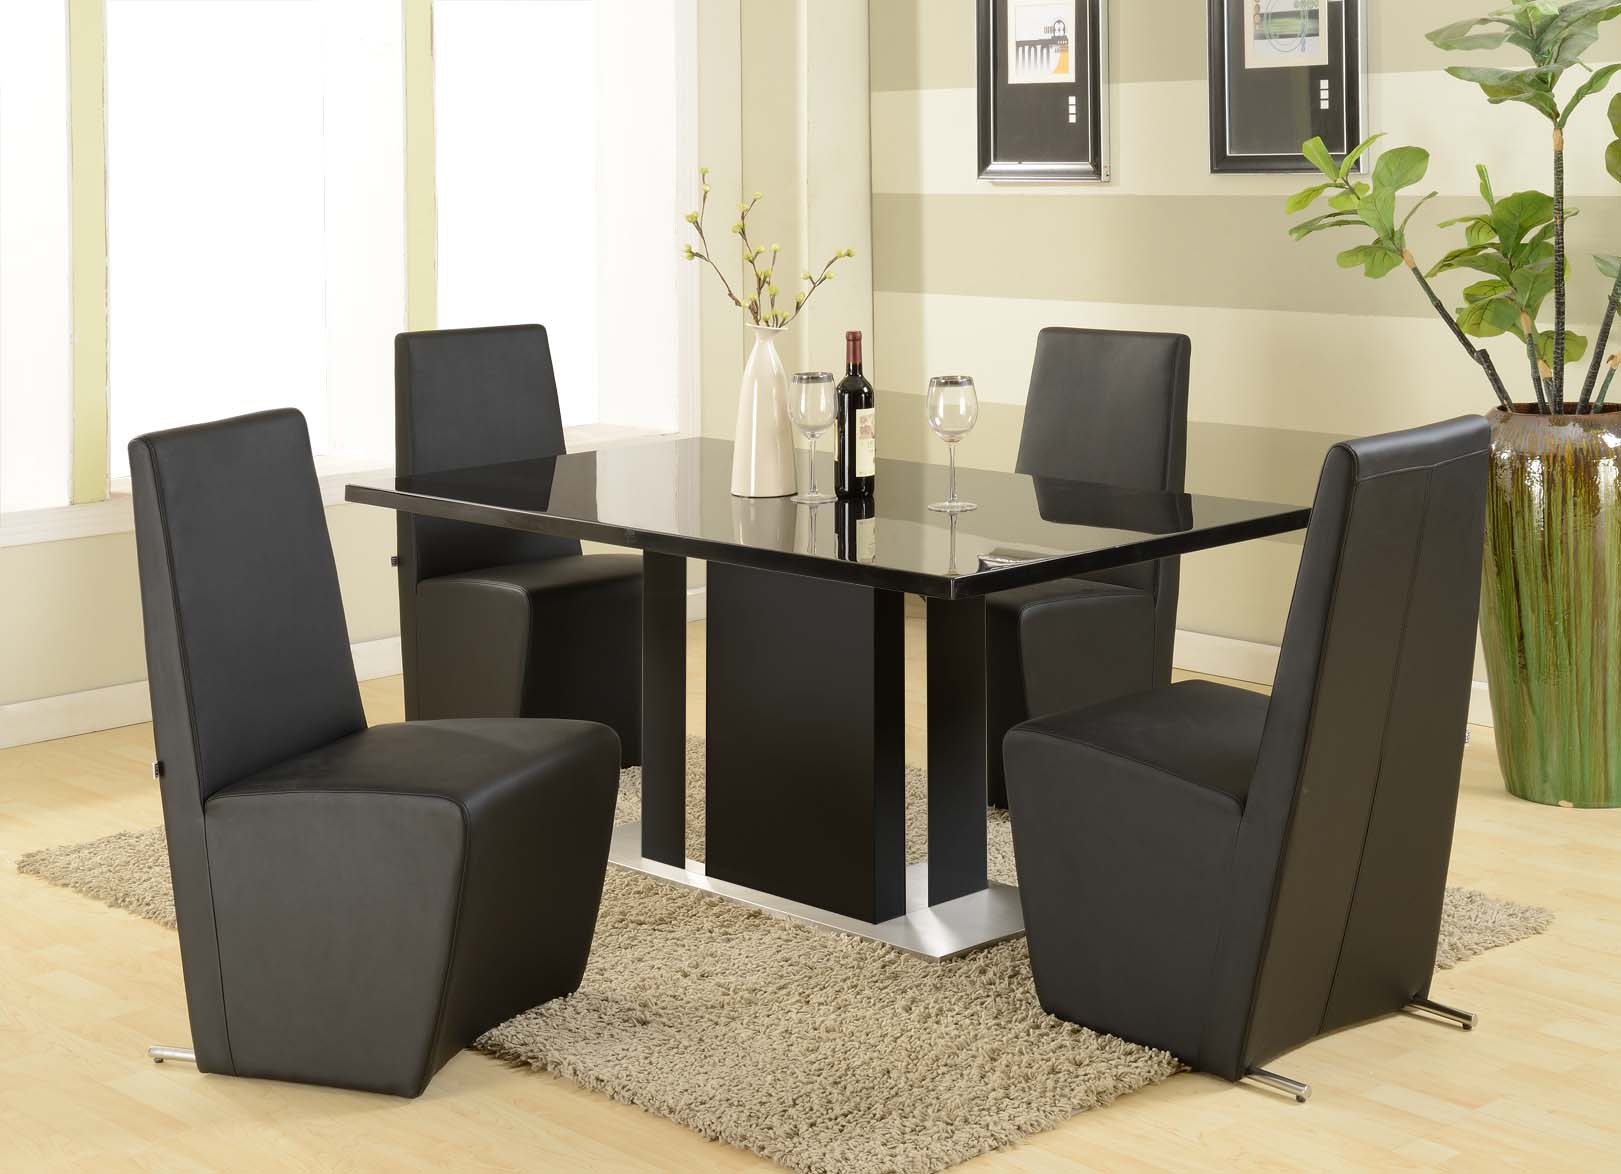 Modern furniture table home design roosa for Dining table set